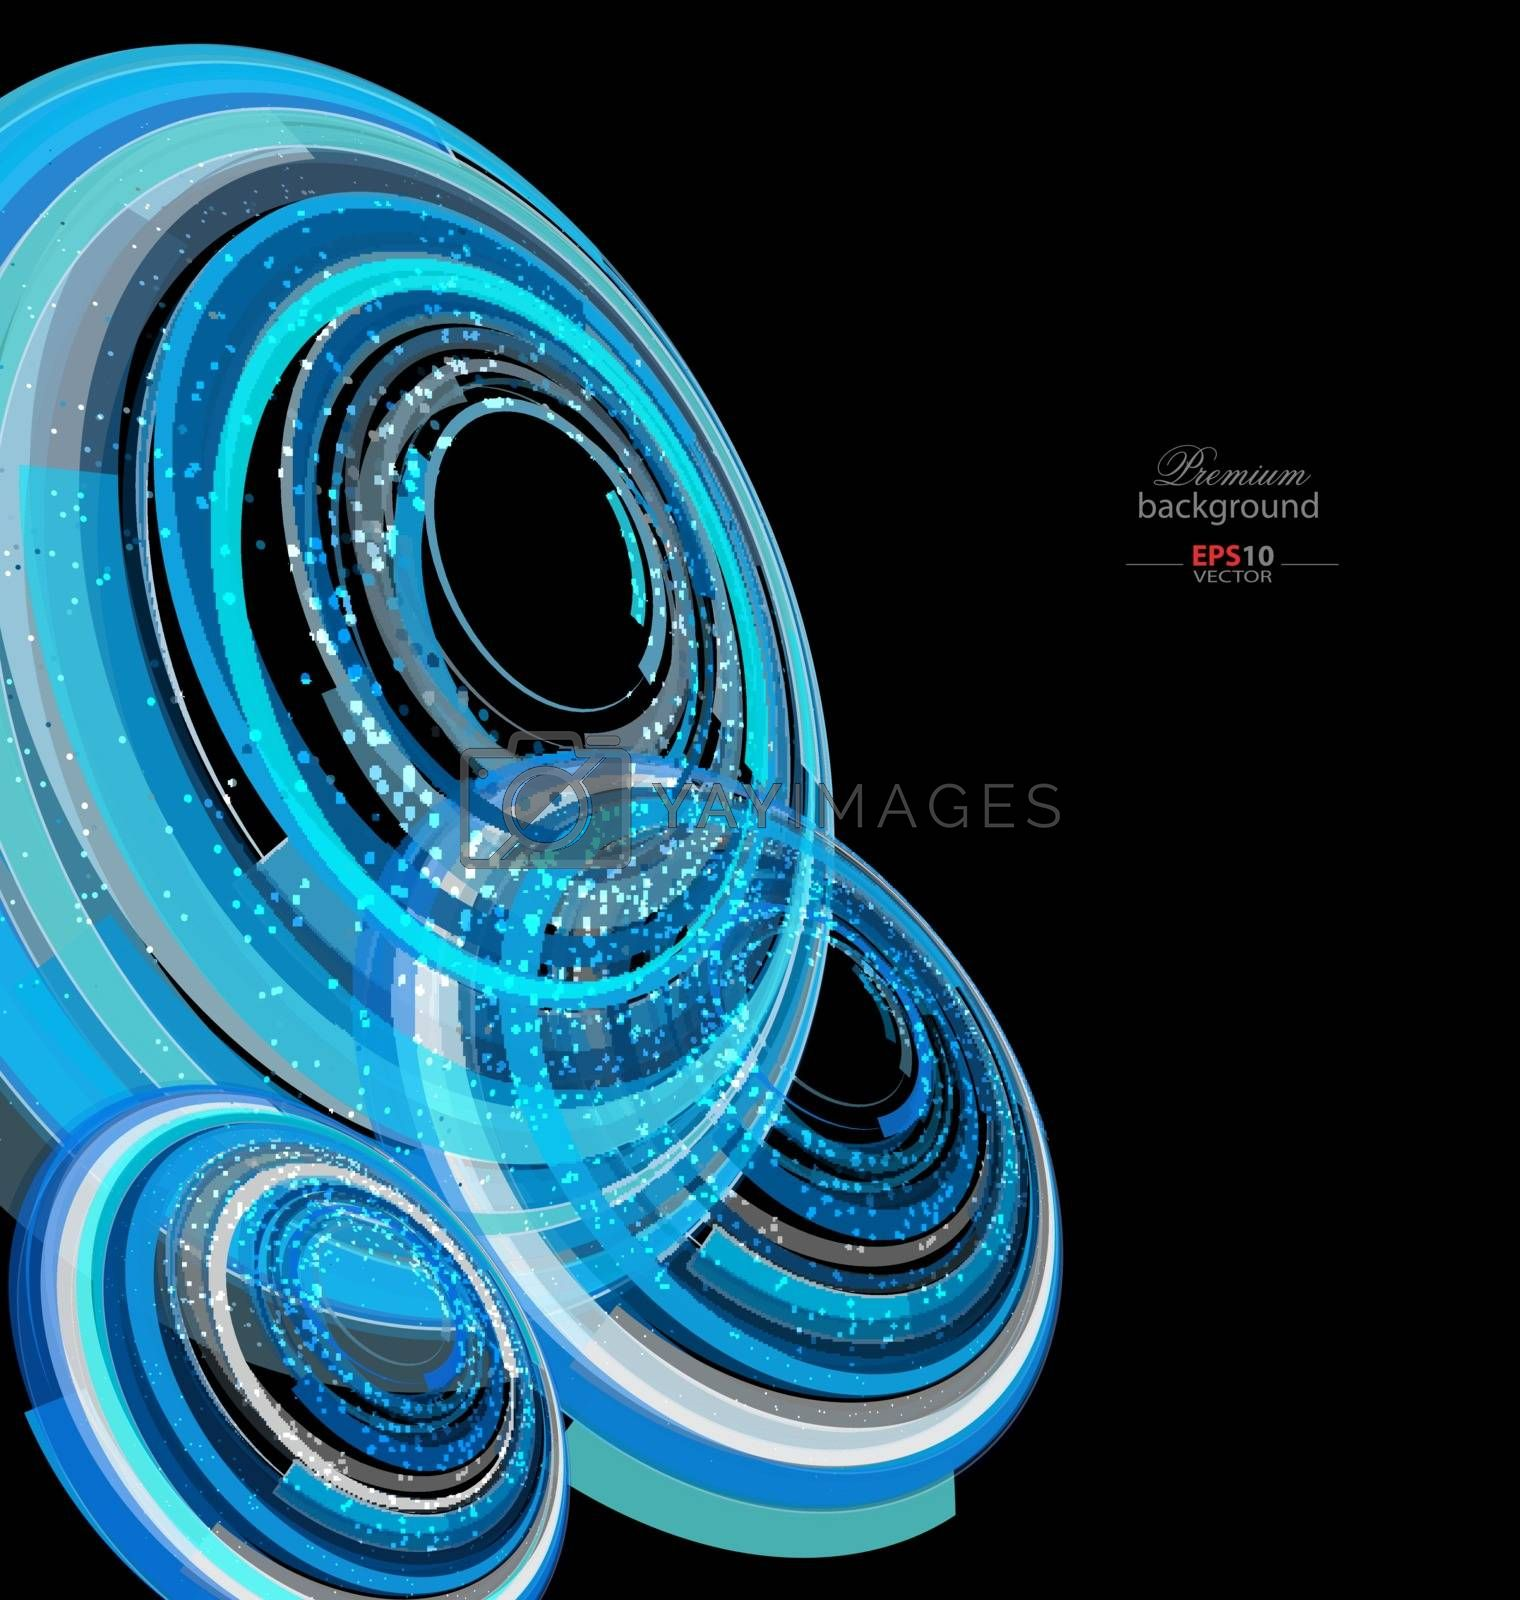 Colorful abstract technology background for creative design tasks